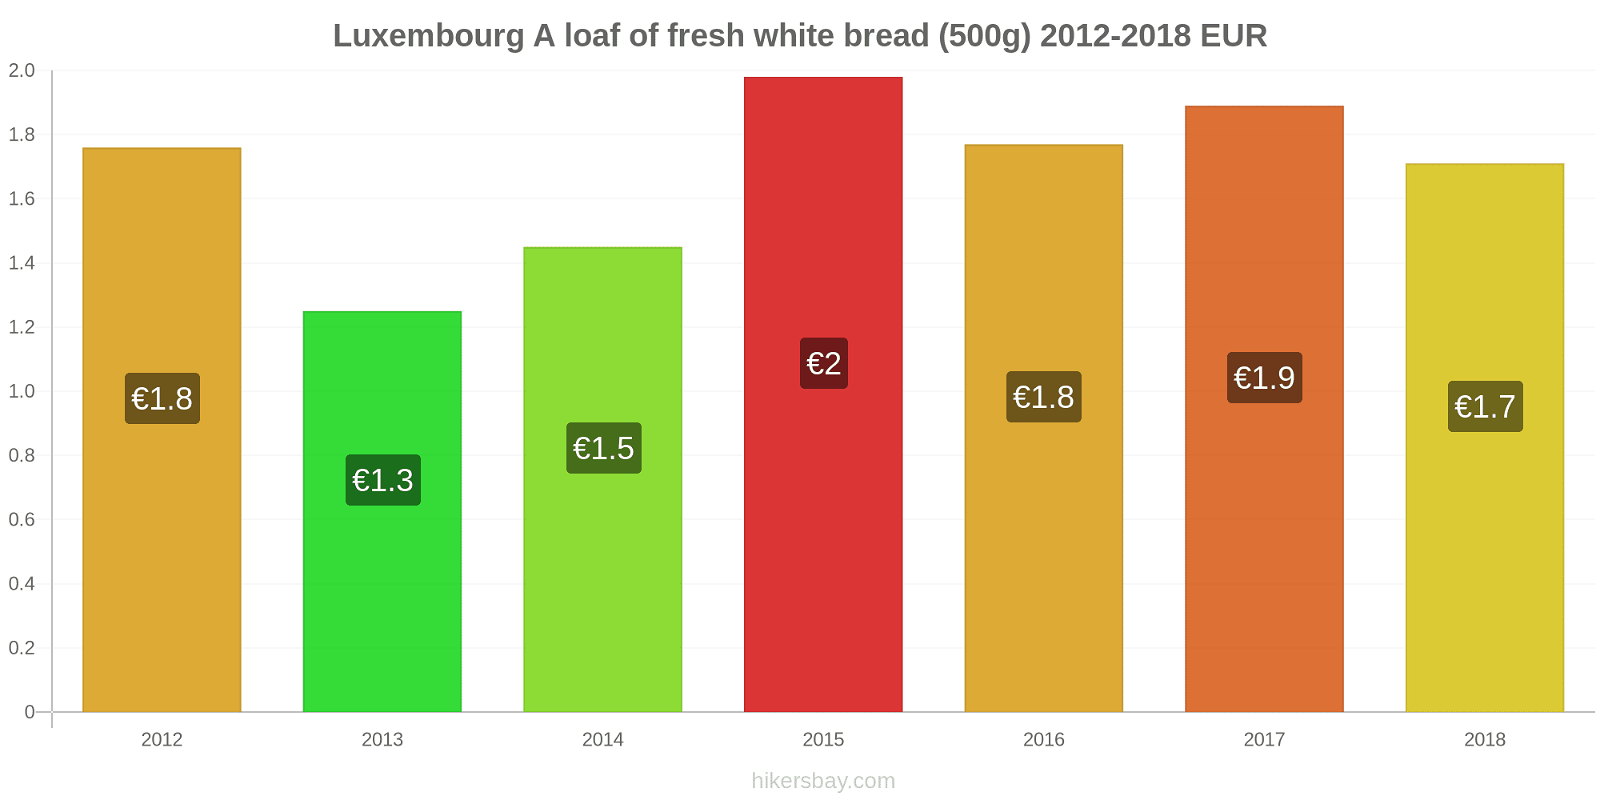 Luxembourg price changes A loaf of fresh white bread (500g) hikersbay.com